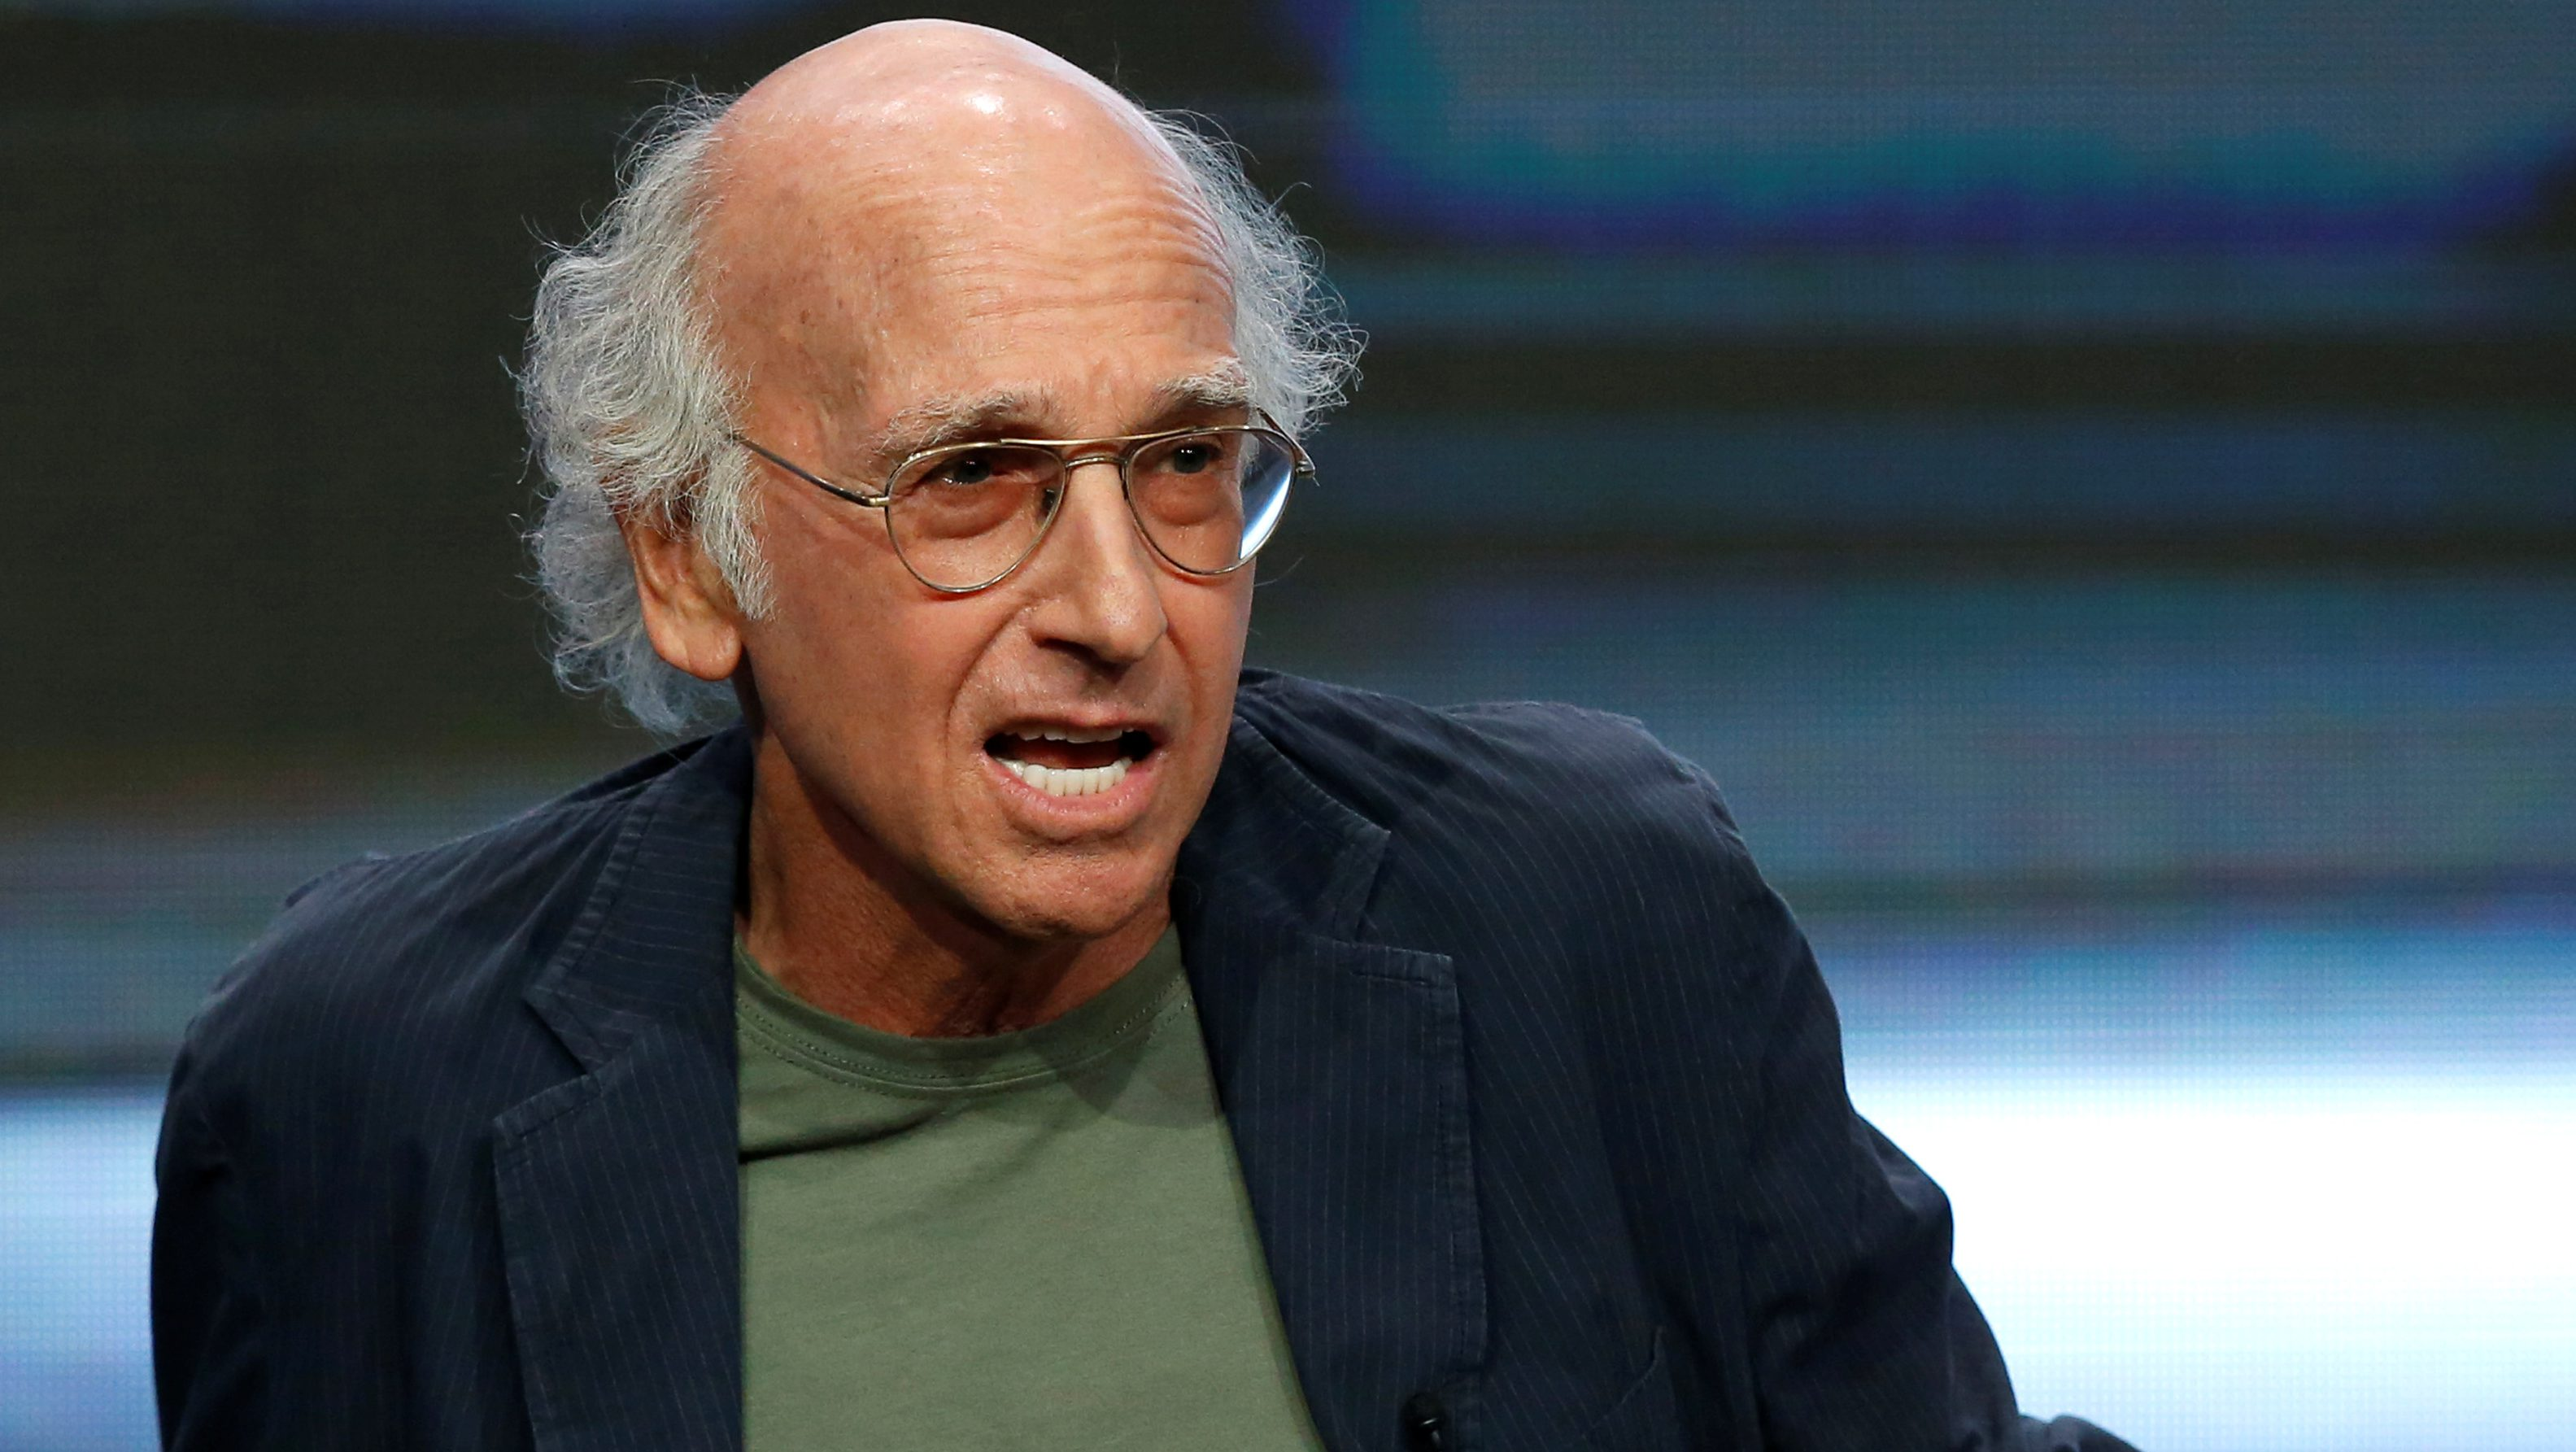 Curb your enthusiasm creator Larry David